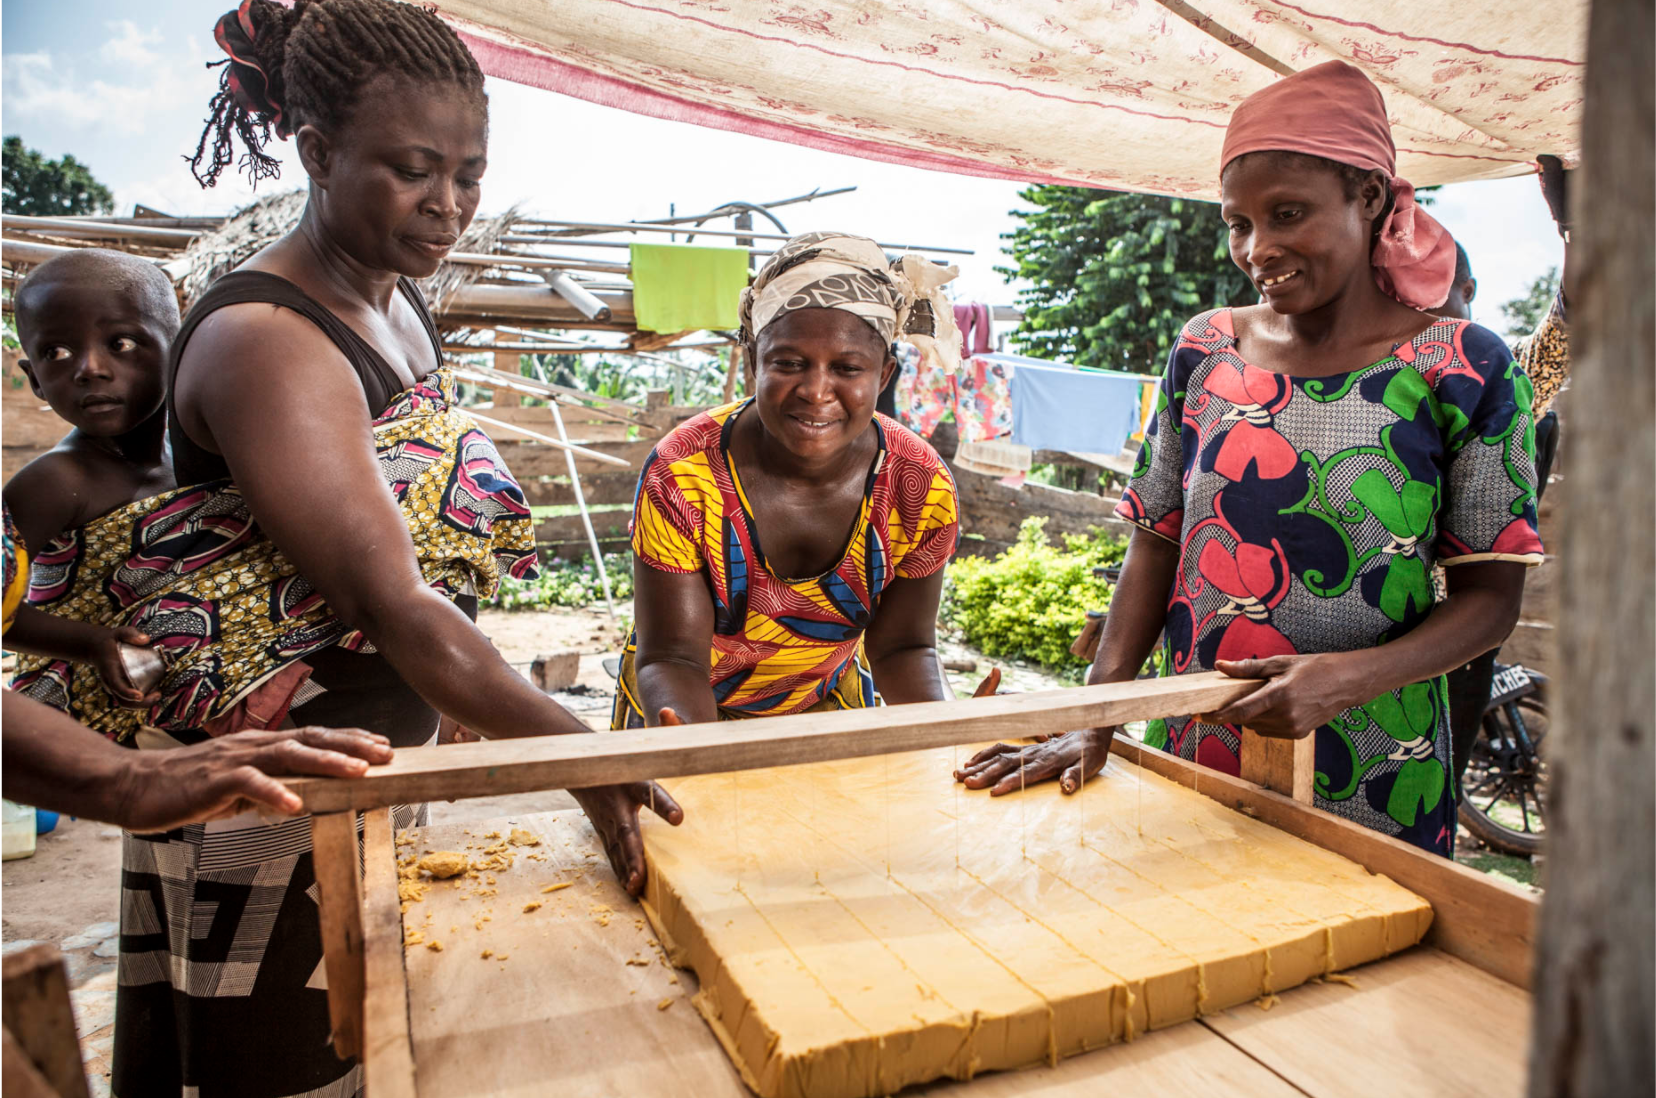 A village soap production collective in Ghana helping local women support their families ©Jason Florio for United Purpose, NGO